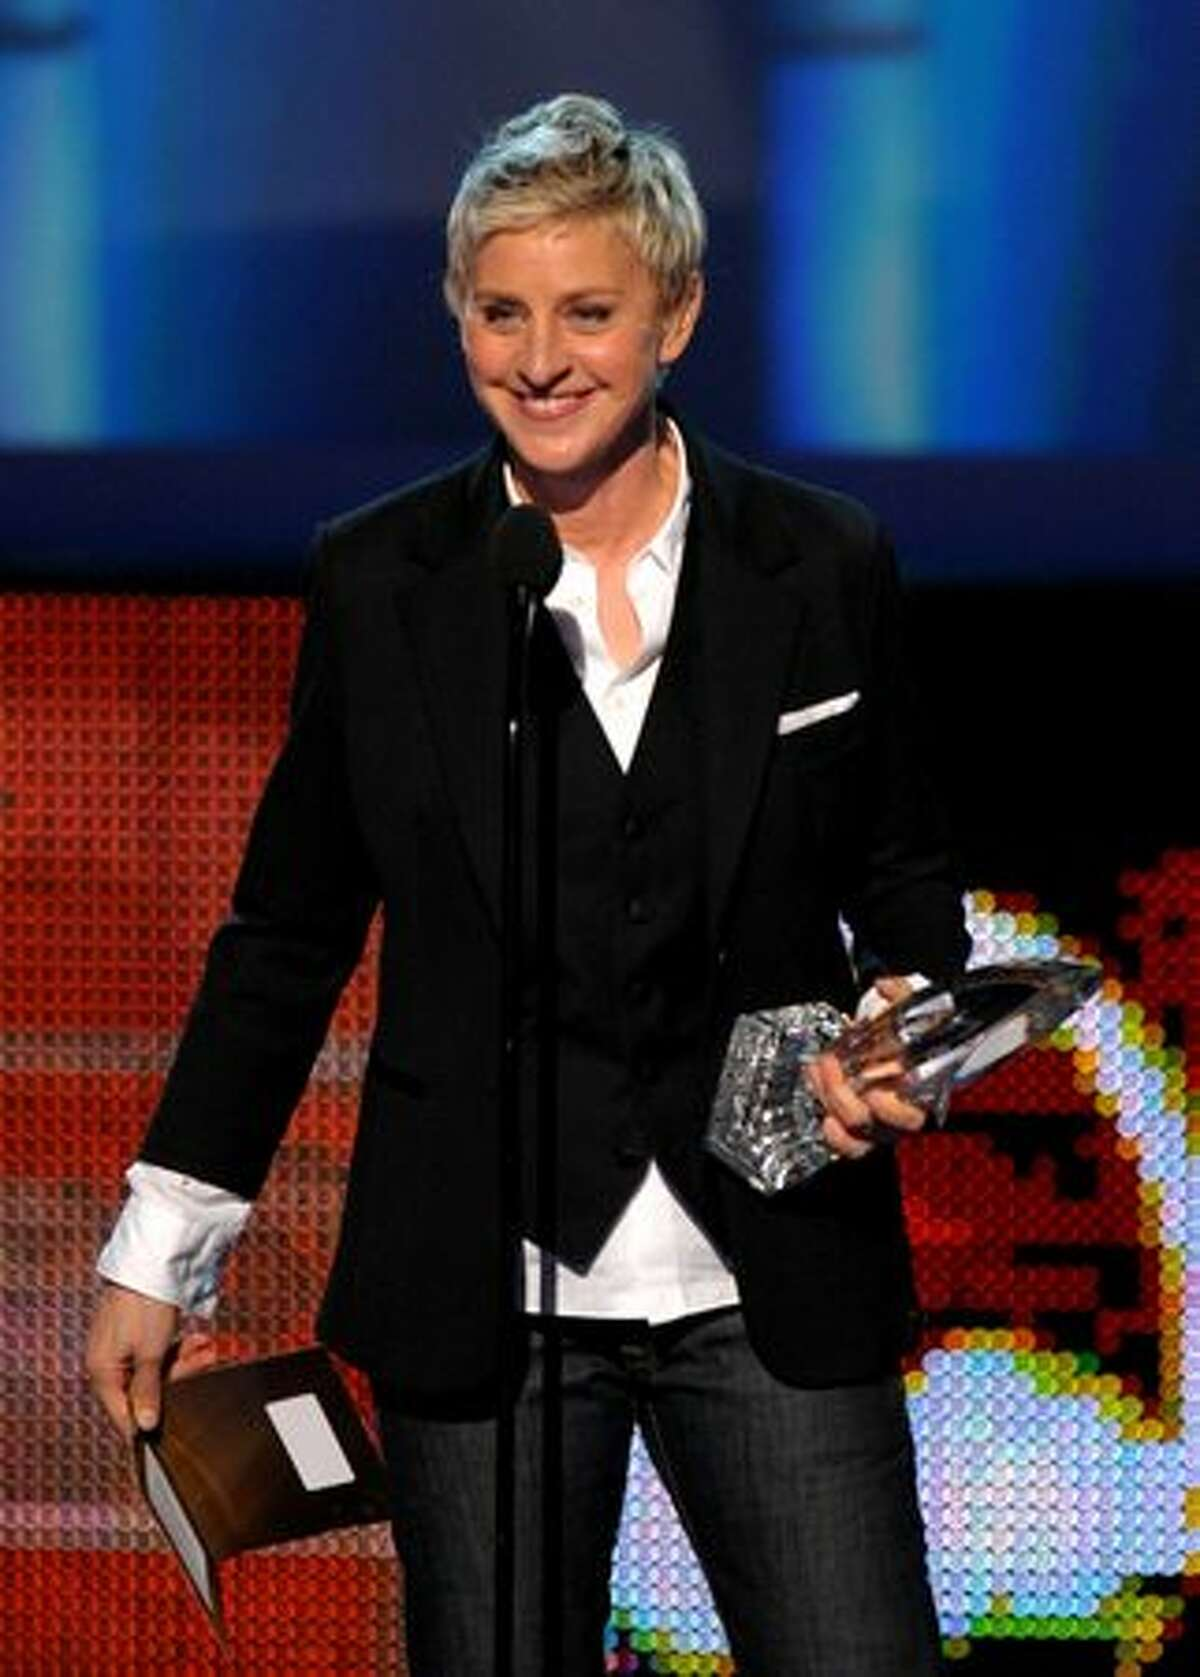 TV personality Ellen DeGeneres presents the Favorite Comedy Movie award.